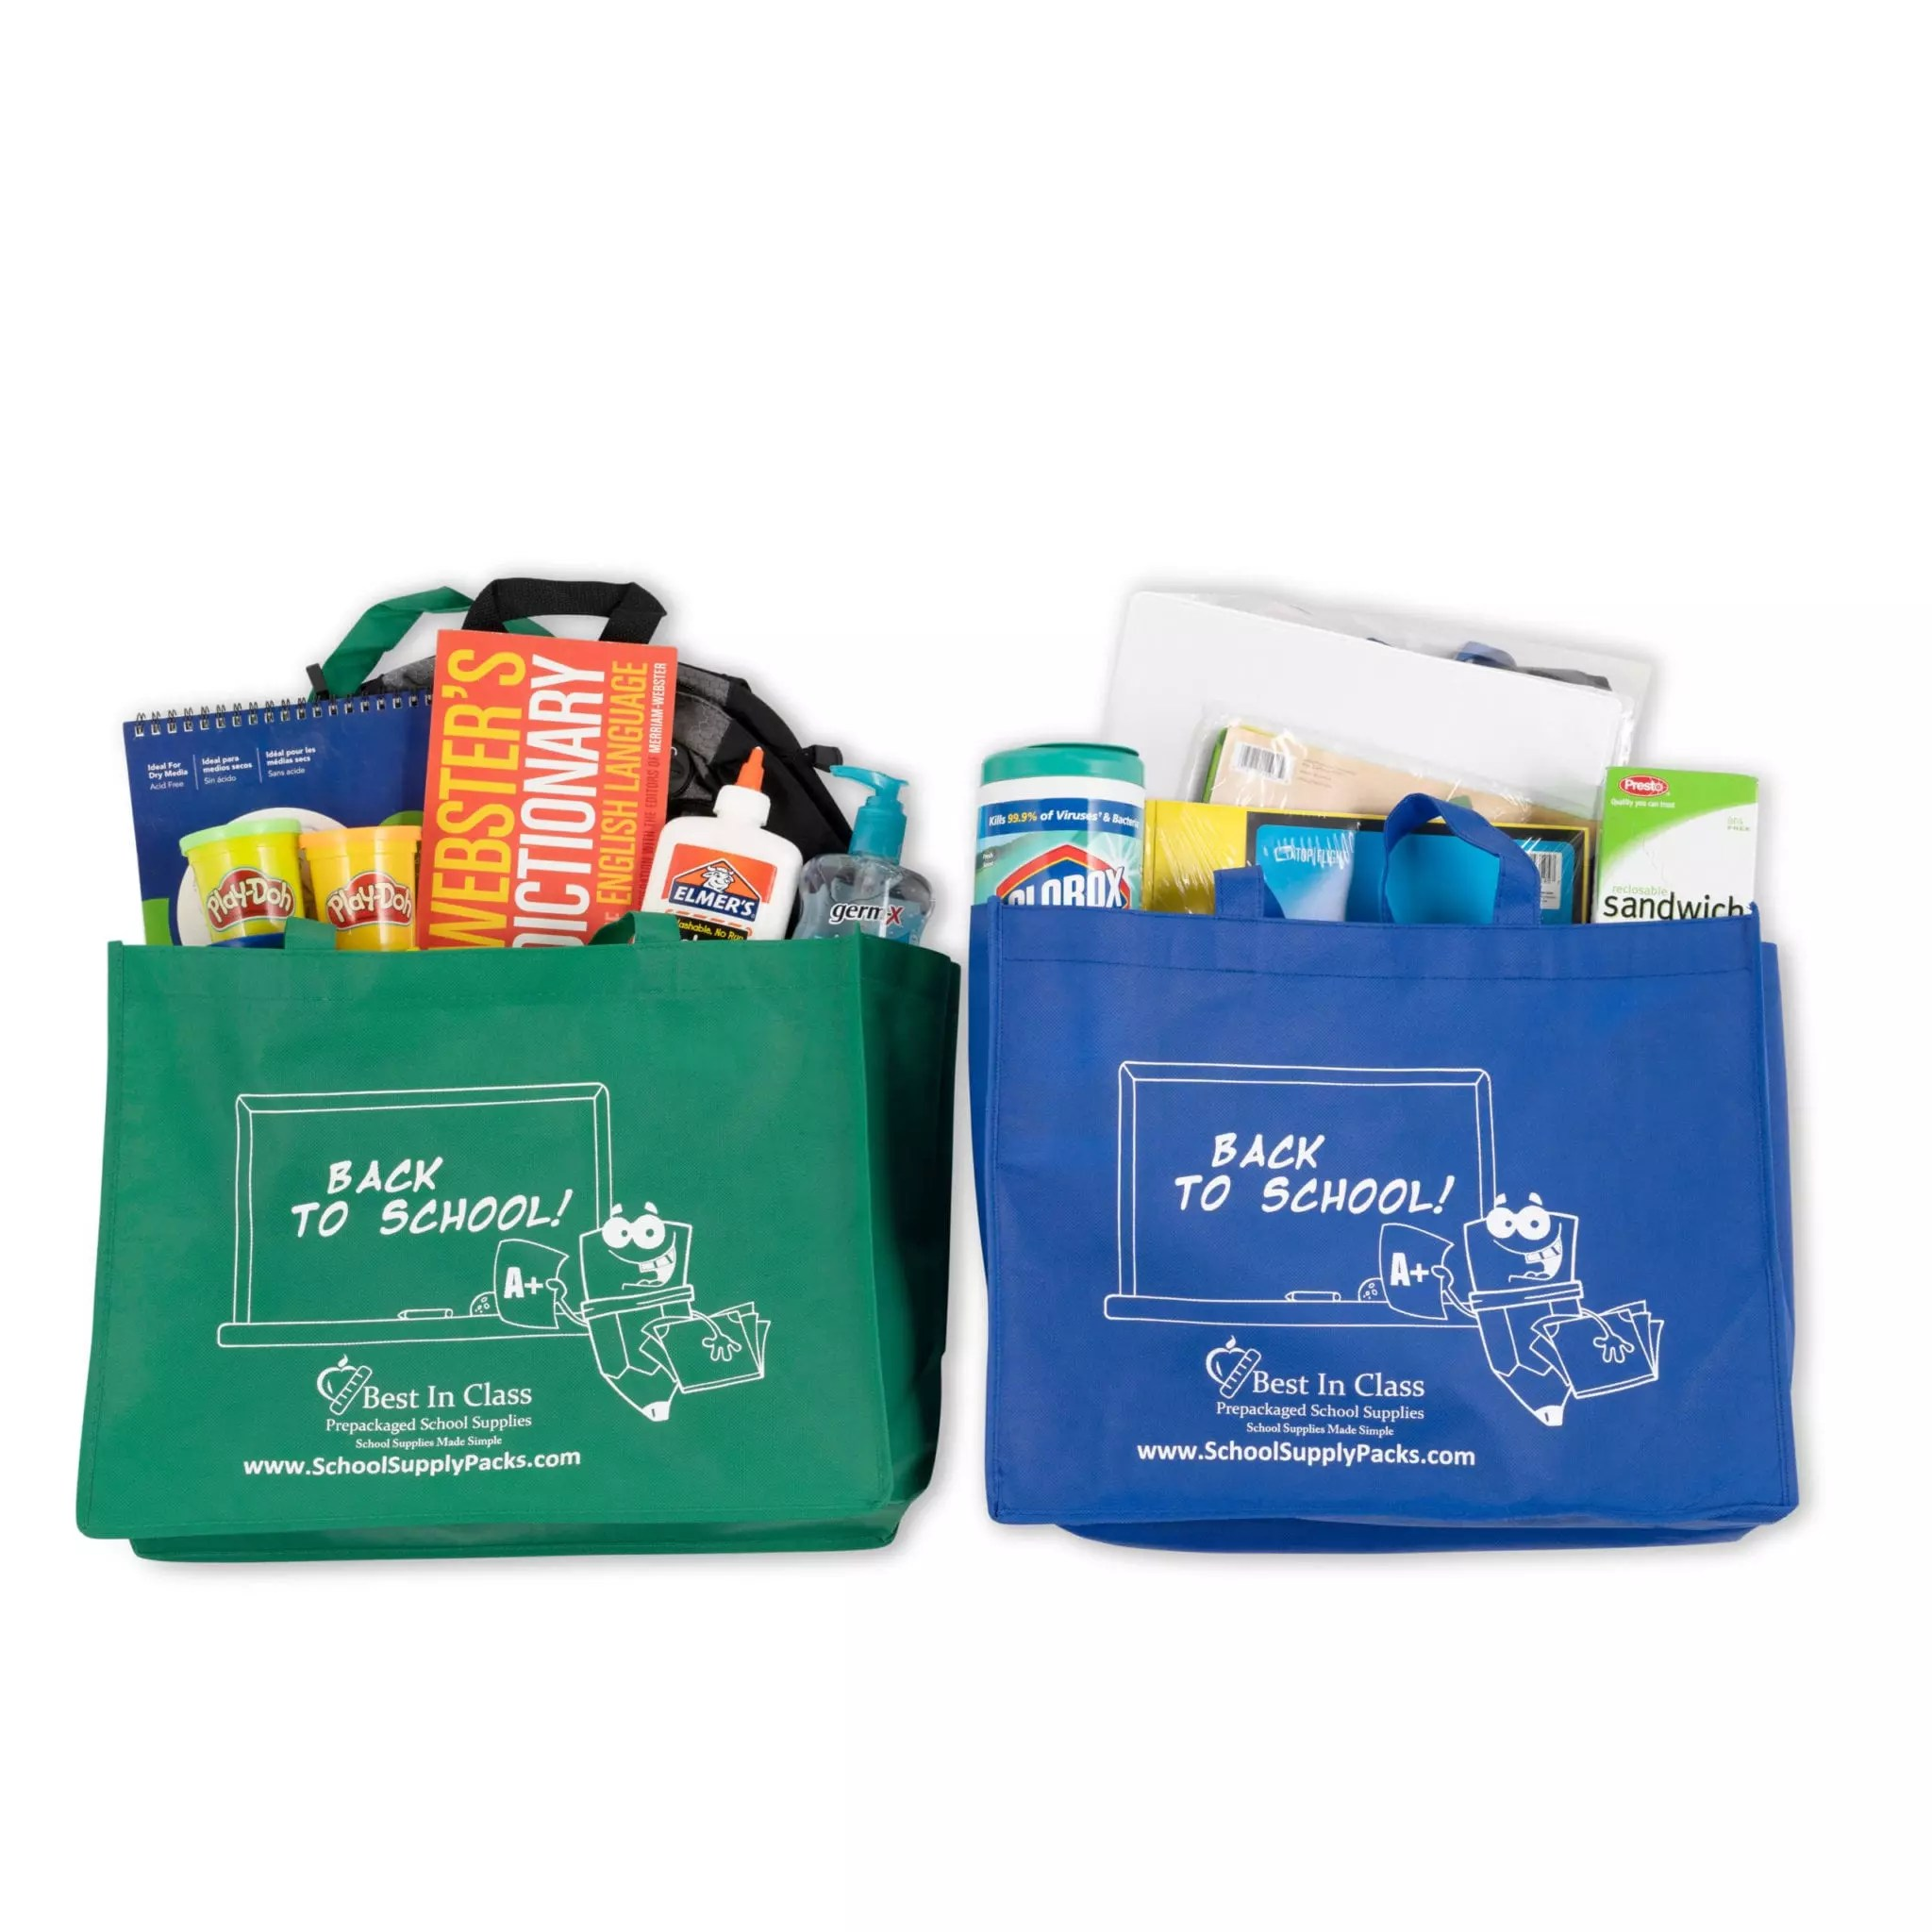 bags with supplies in them